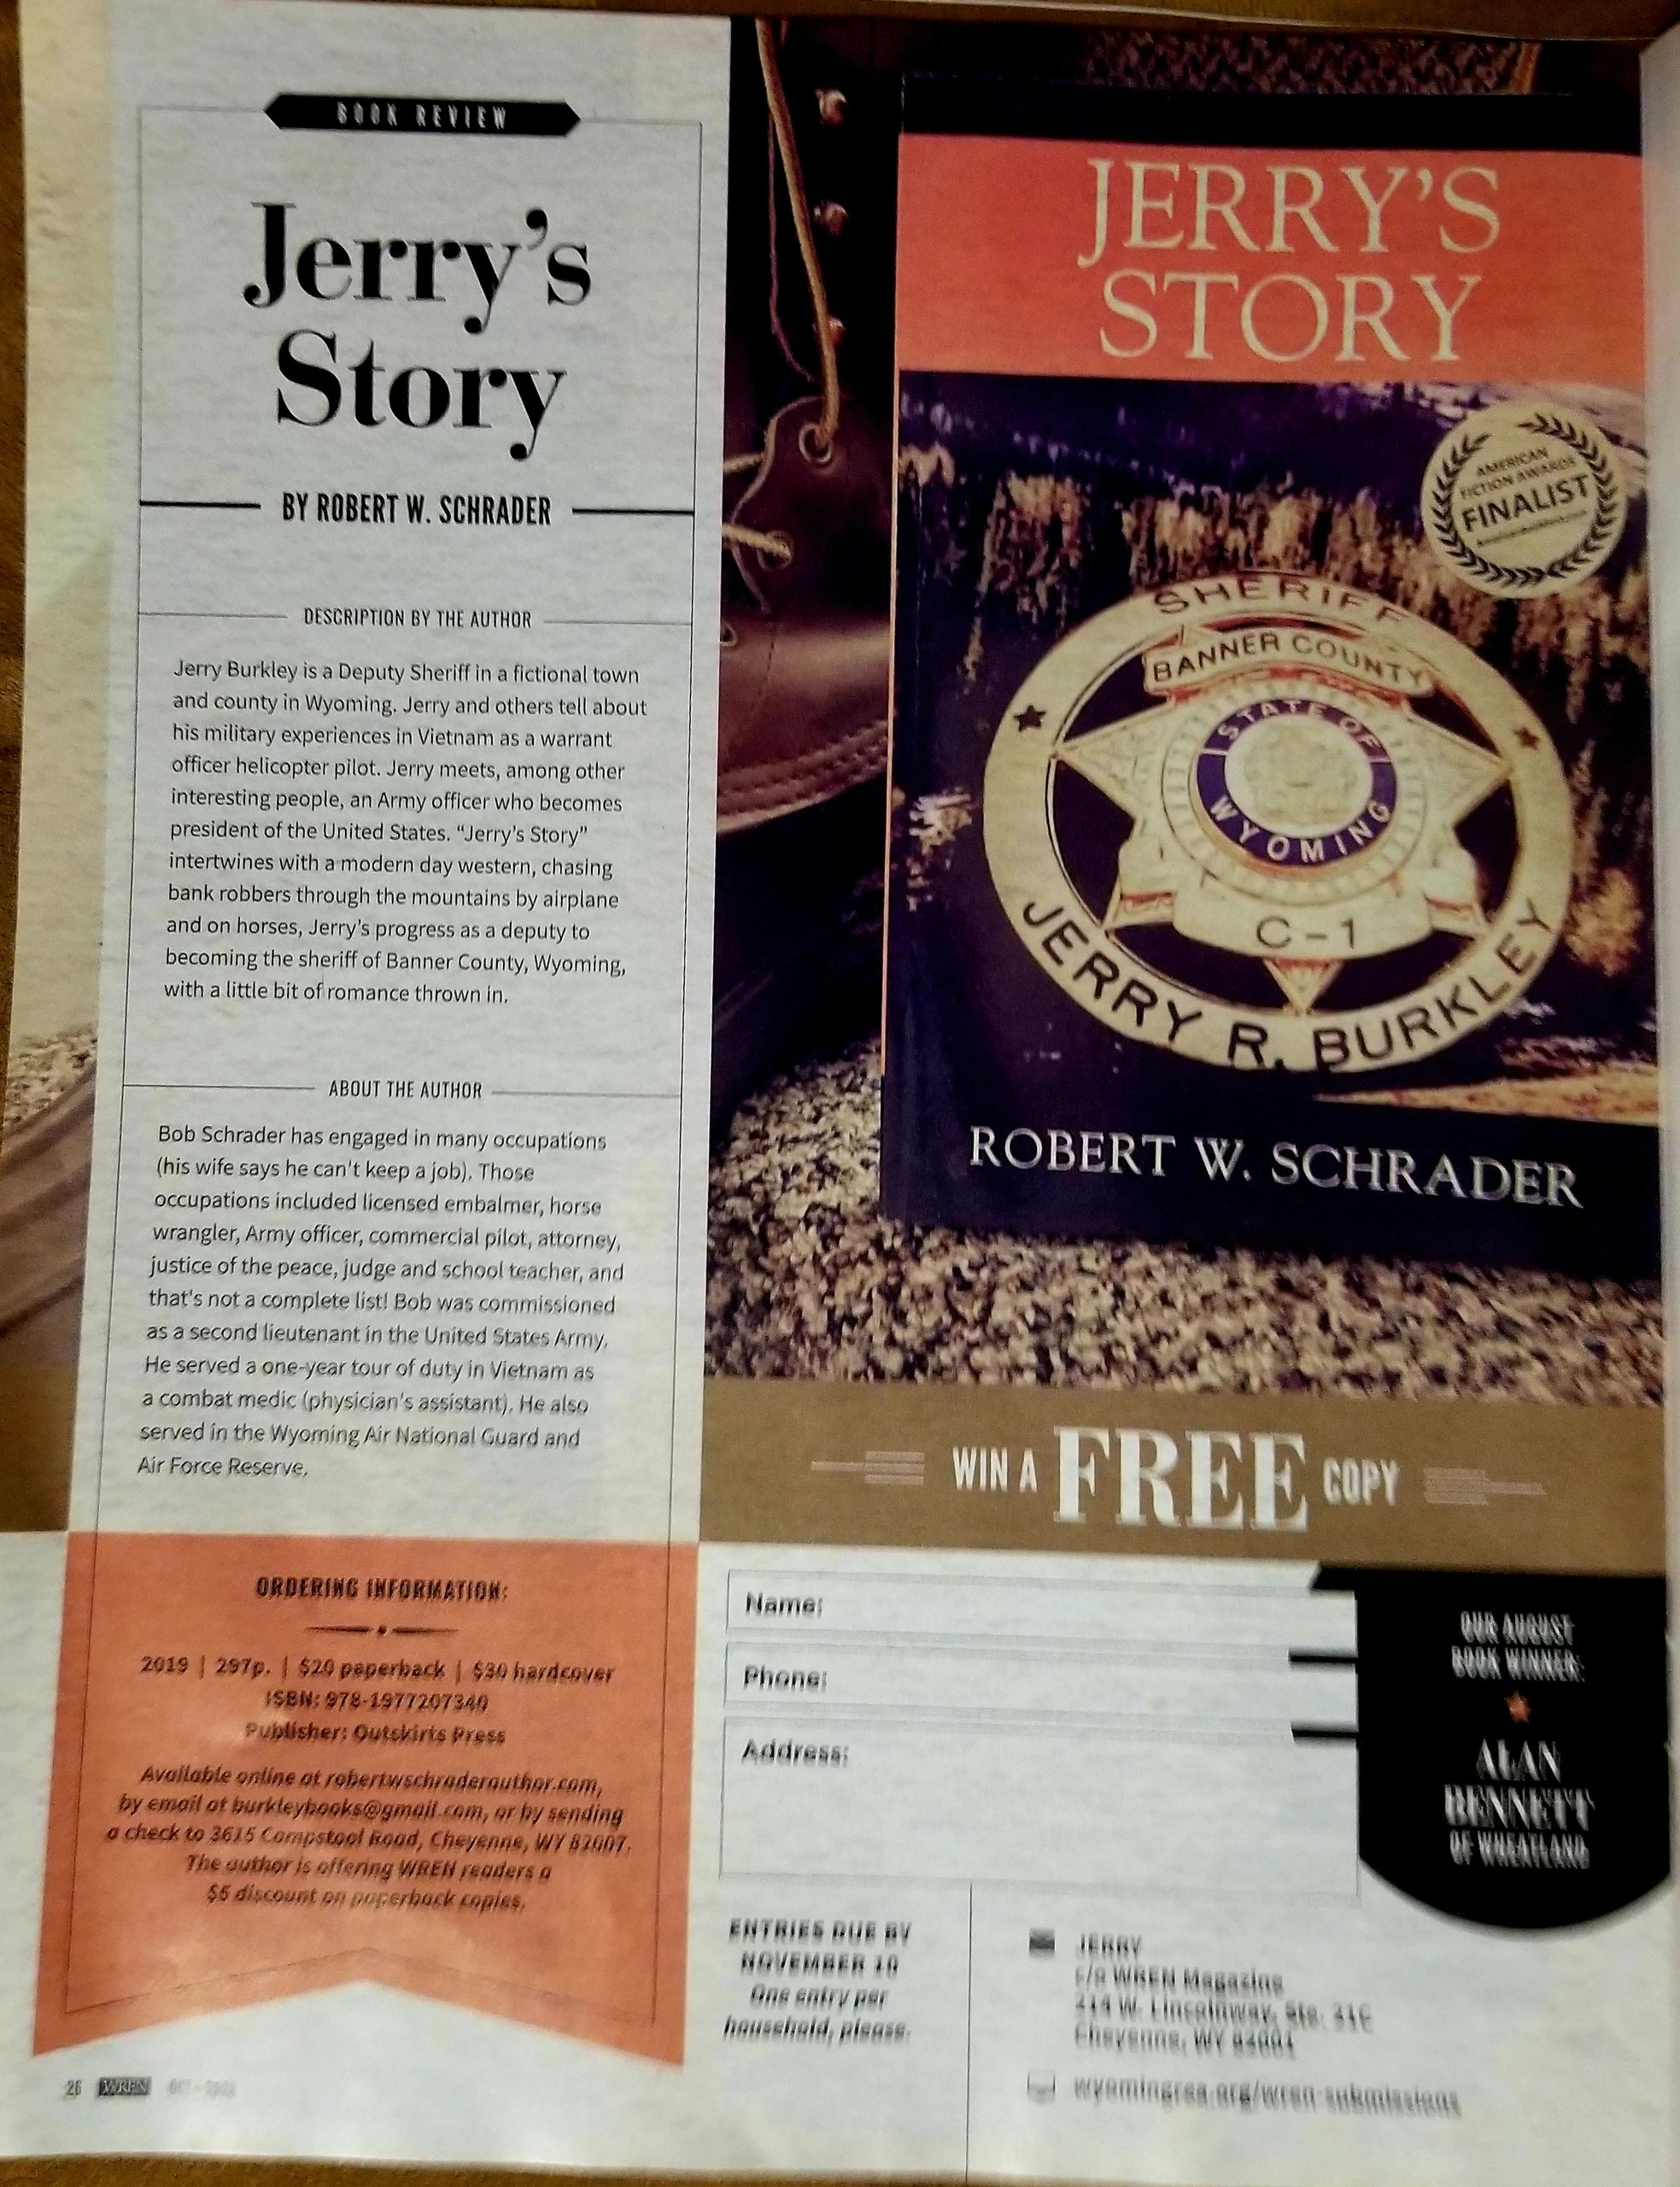 Special Offer for WREN  Readers .  JERRY'S STORY $20.00, Autographed and mailed.